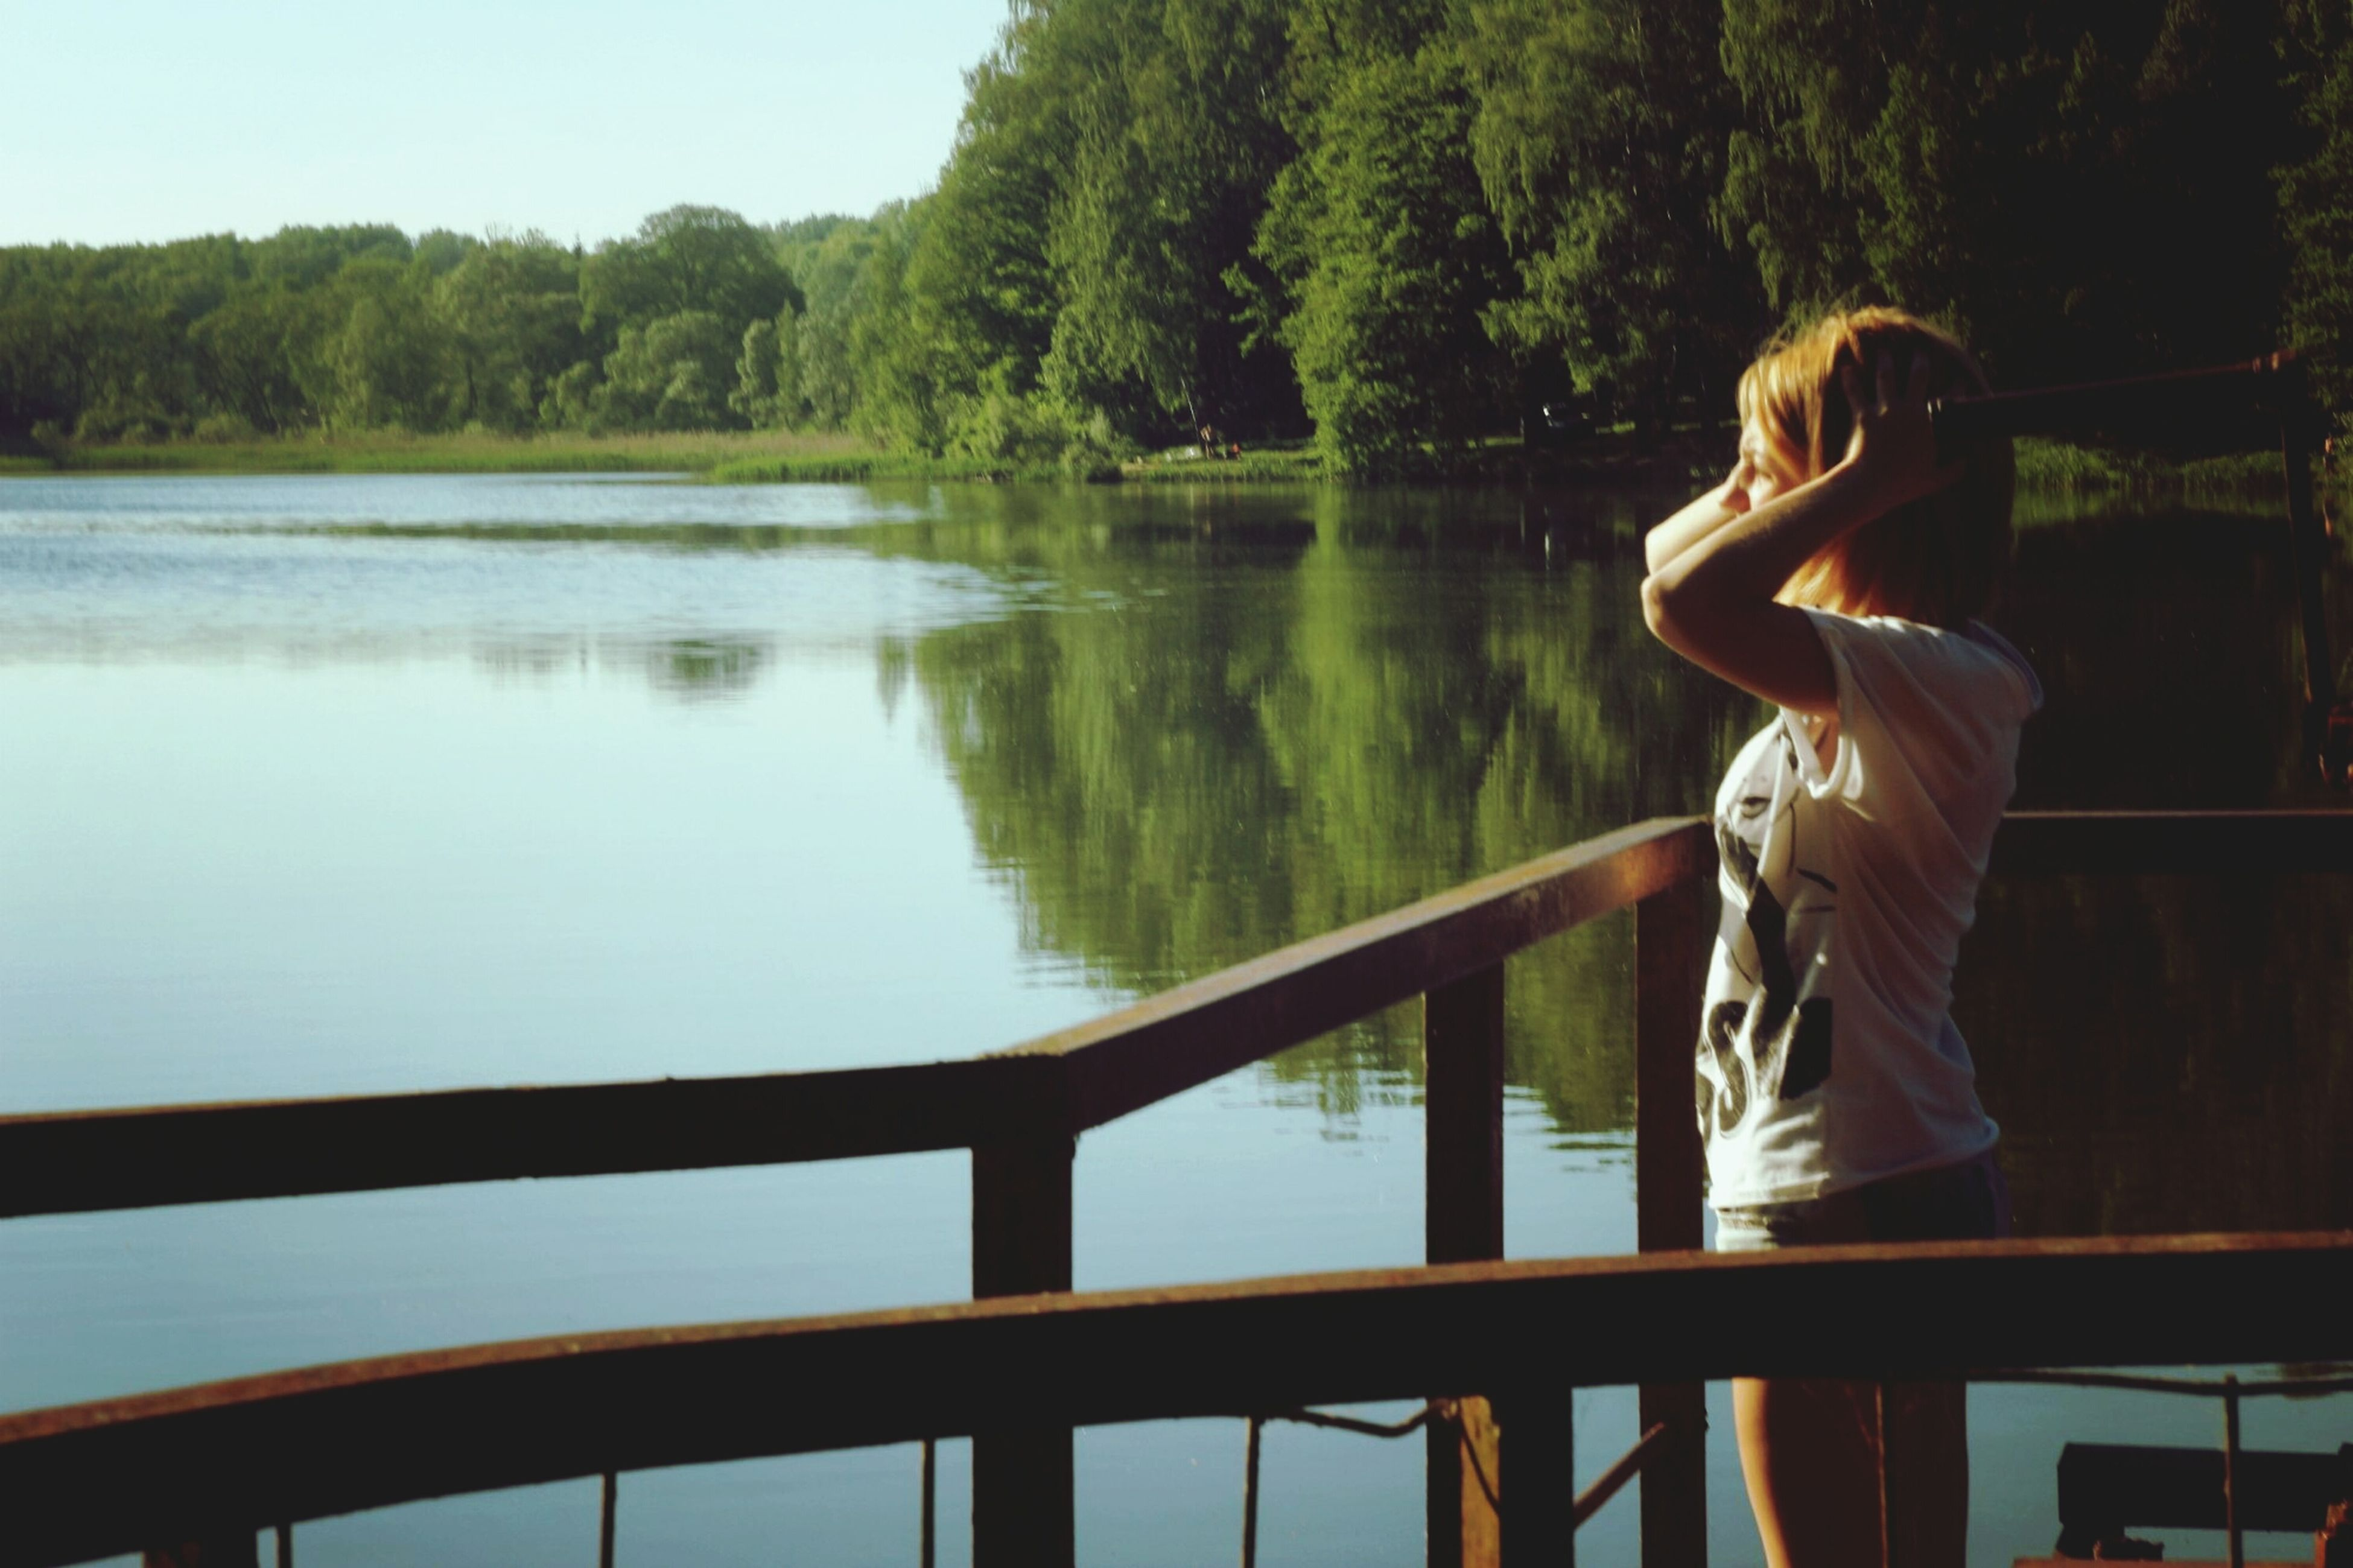 water, tree, lake, railing, lifestyles, leisure activity, standing, river, tranquility, nature, reflection, rear view, casual clothing, tranquil scene, beauty in nature, full length, three quarter length, scenics